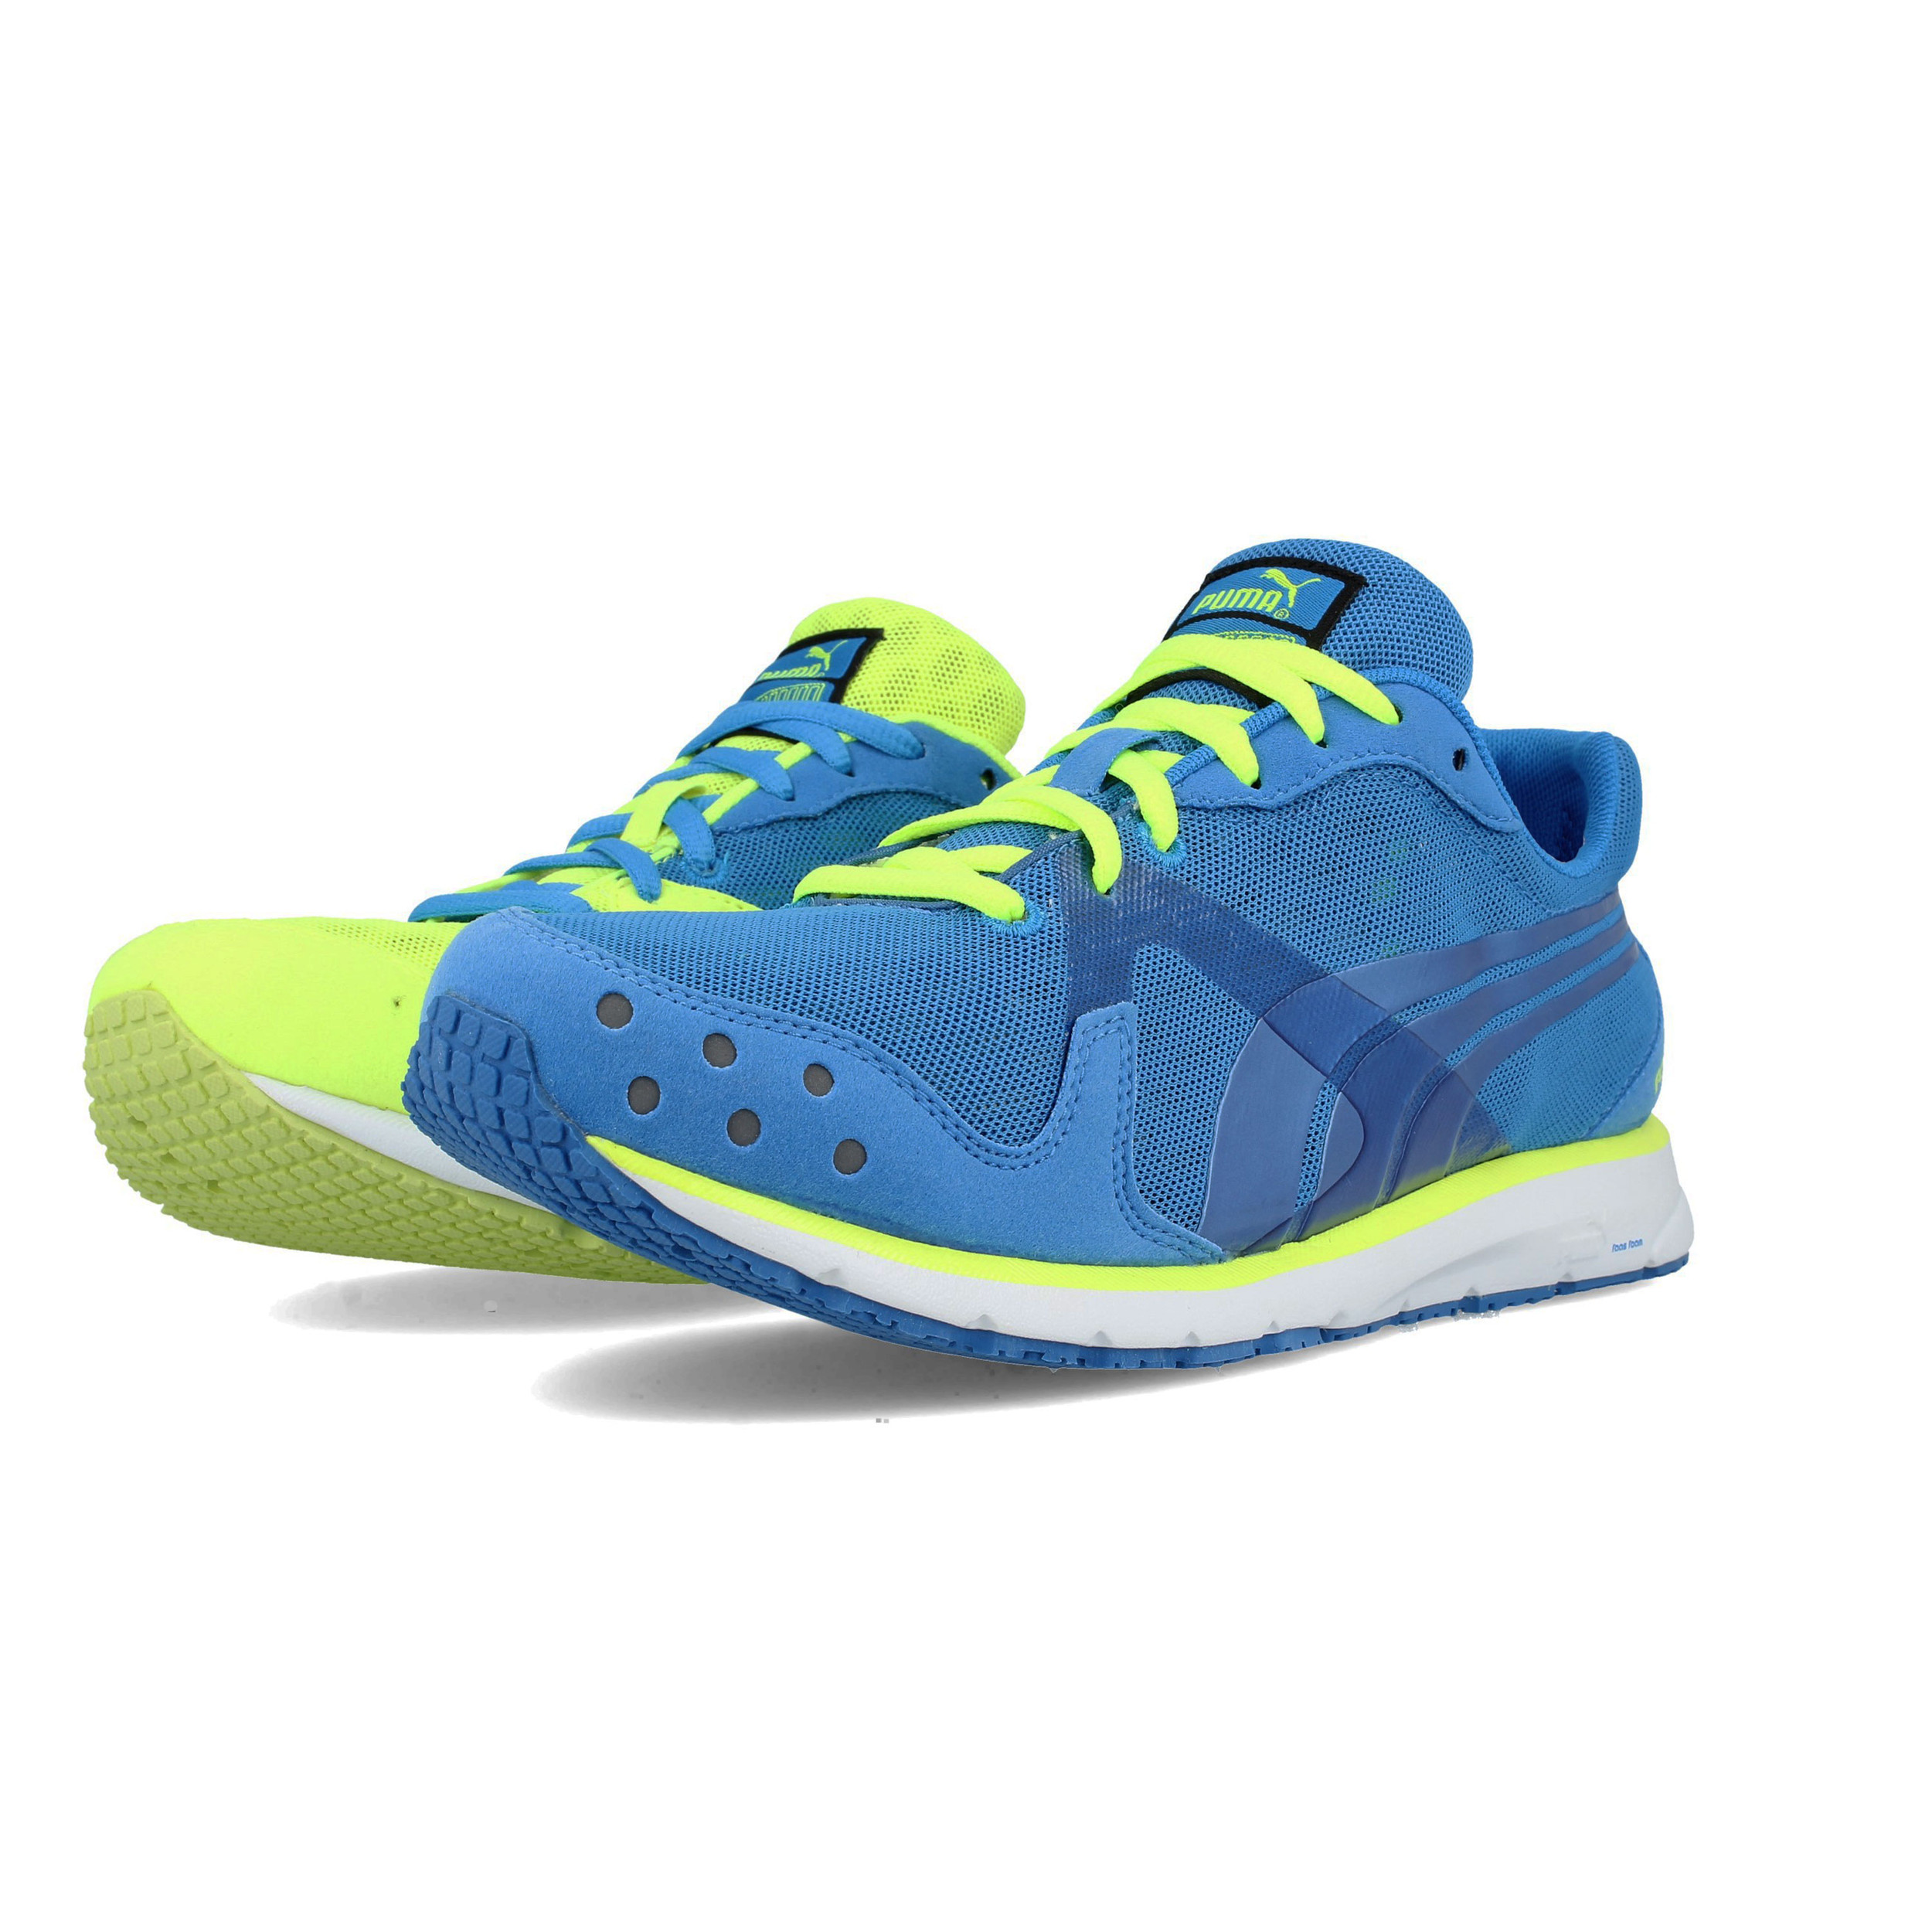 Details about Puma Mens Faas 300 R Running Shoes Trainers Sneakers Blue  Yellow Sports f5ca7f1d74cd